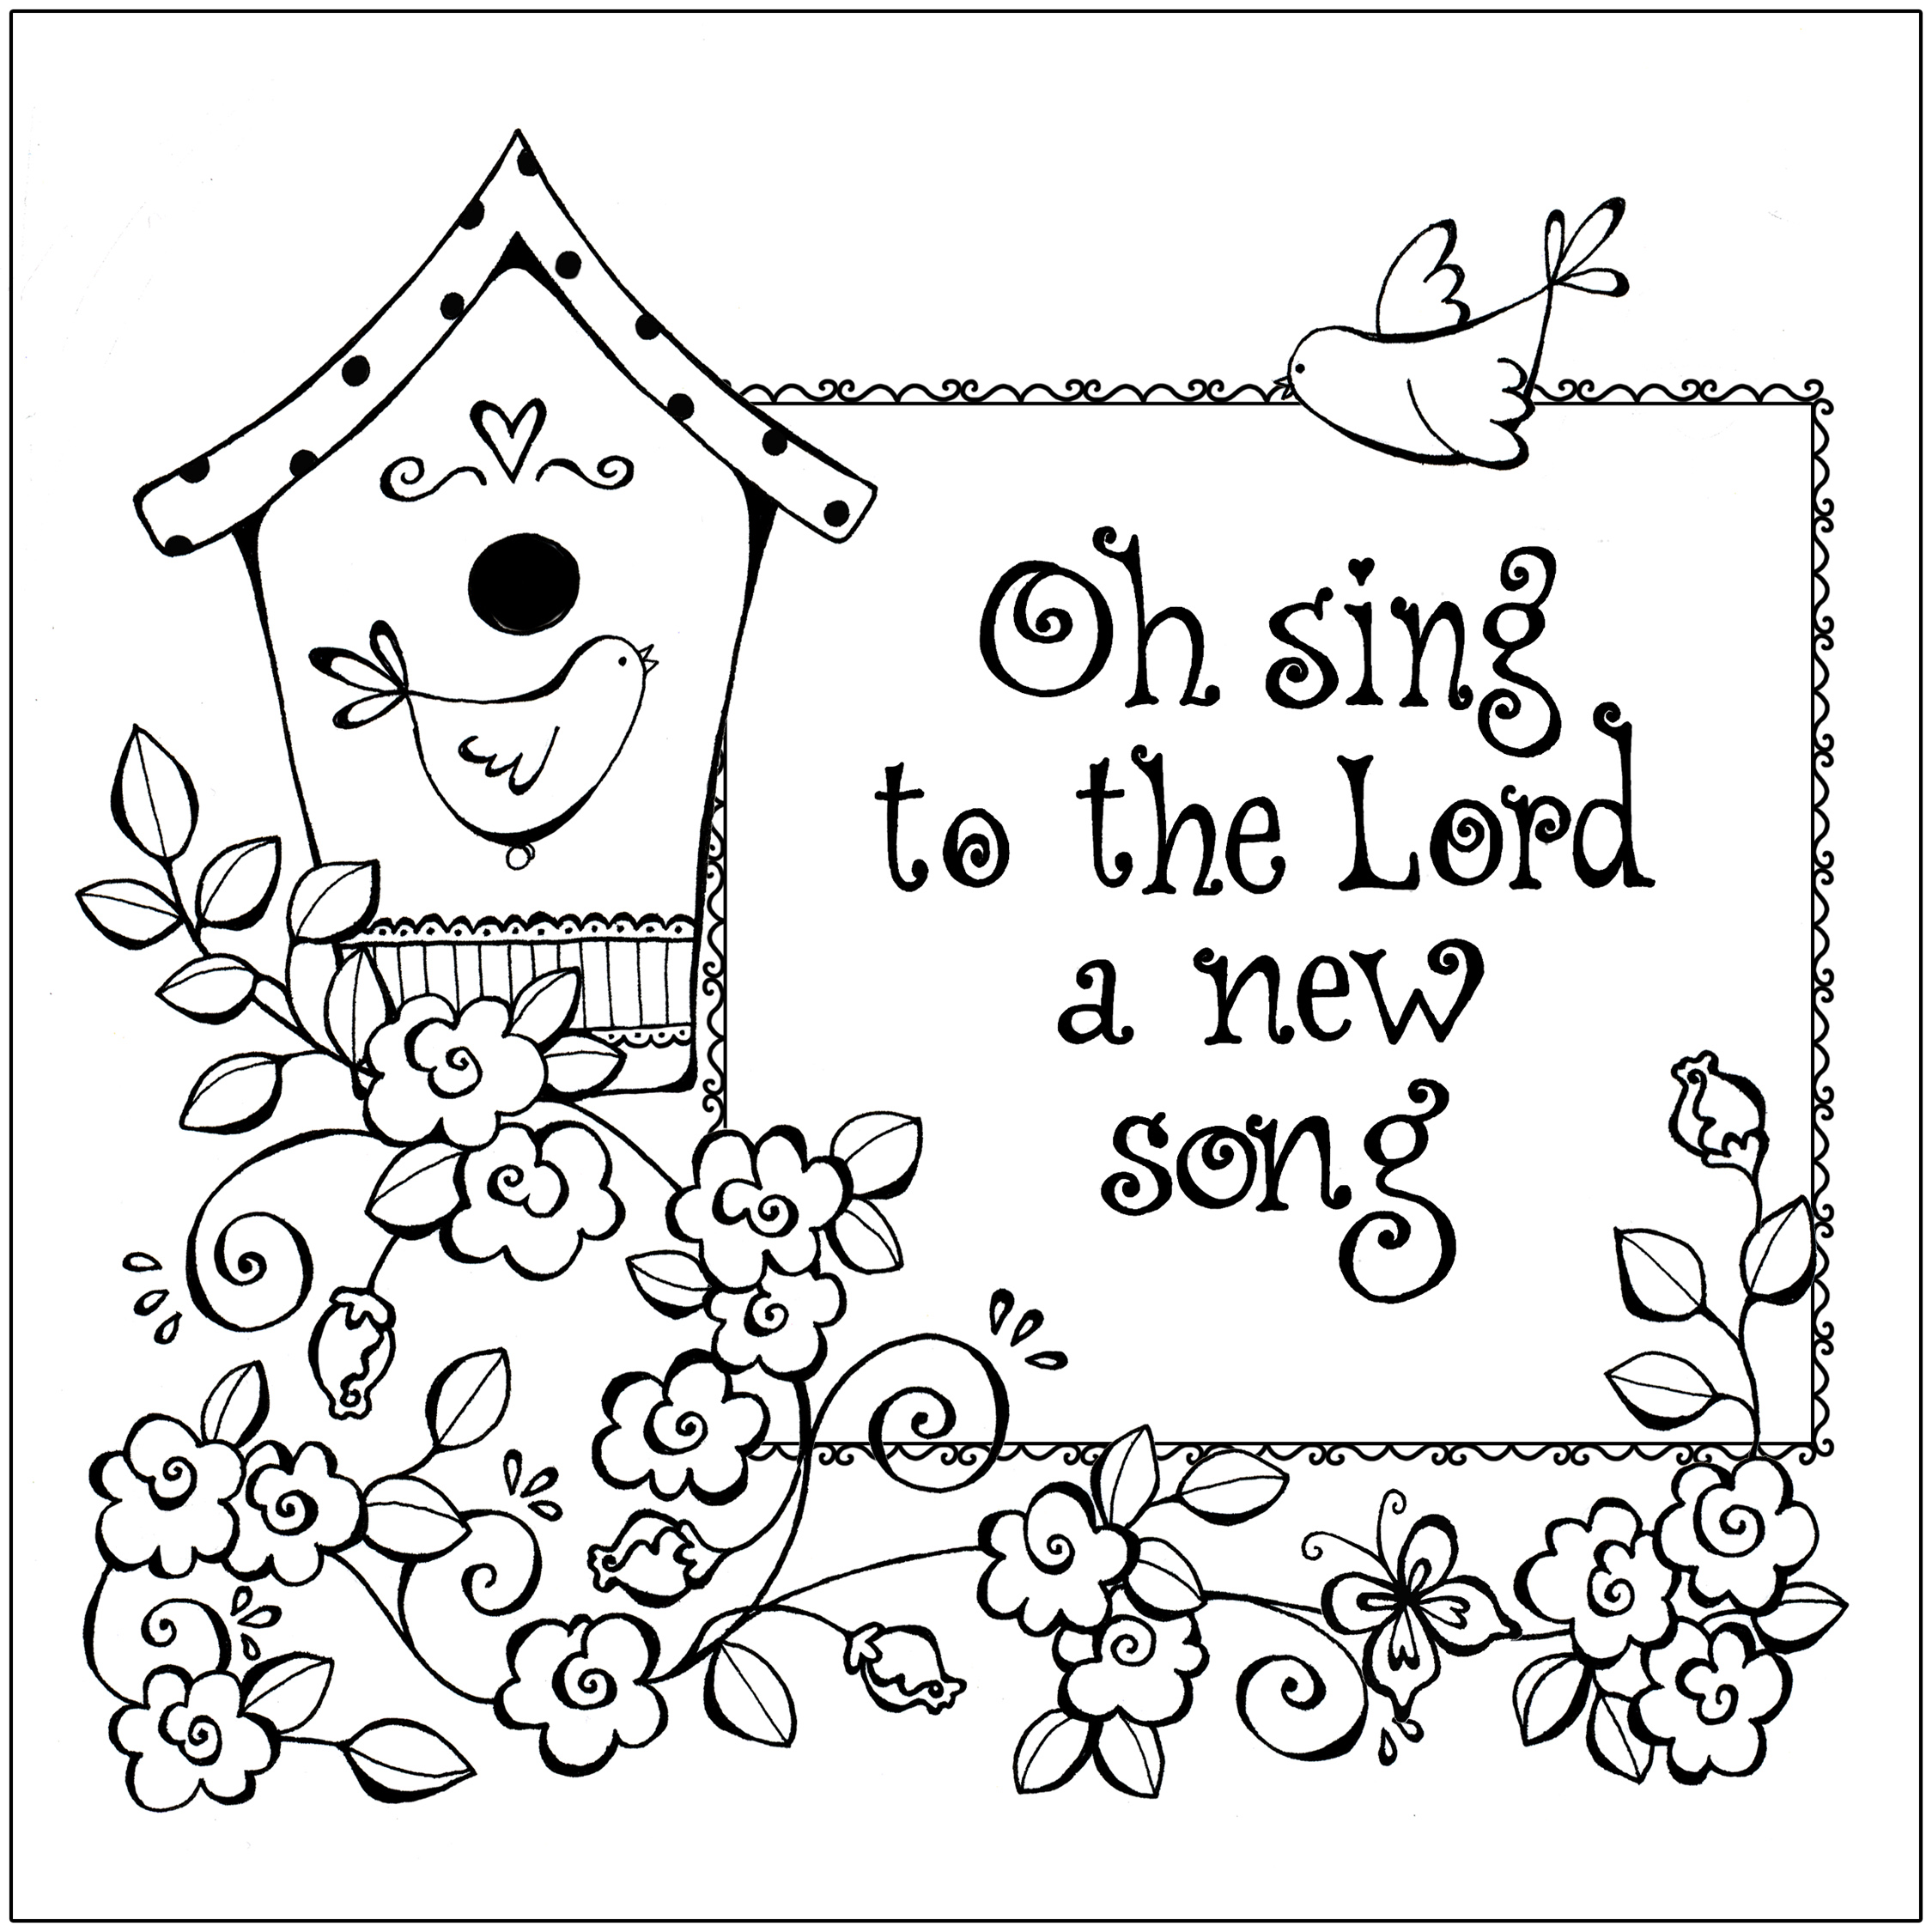 Printable coloring pages about the bible - Christian Coloring Page Printable Images